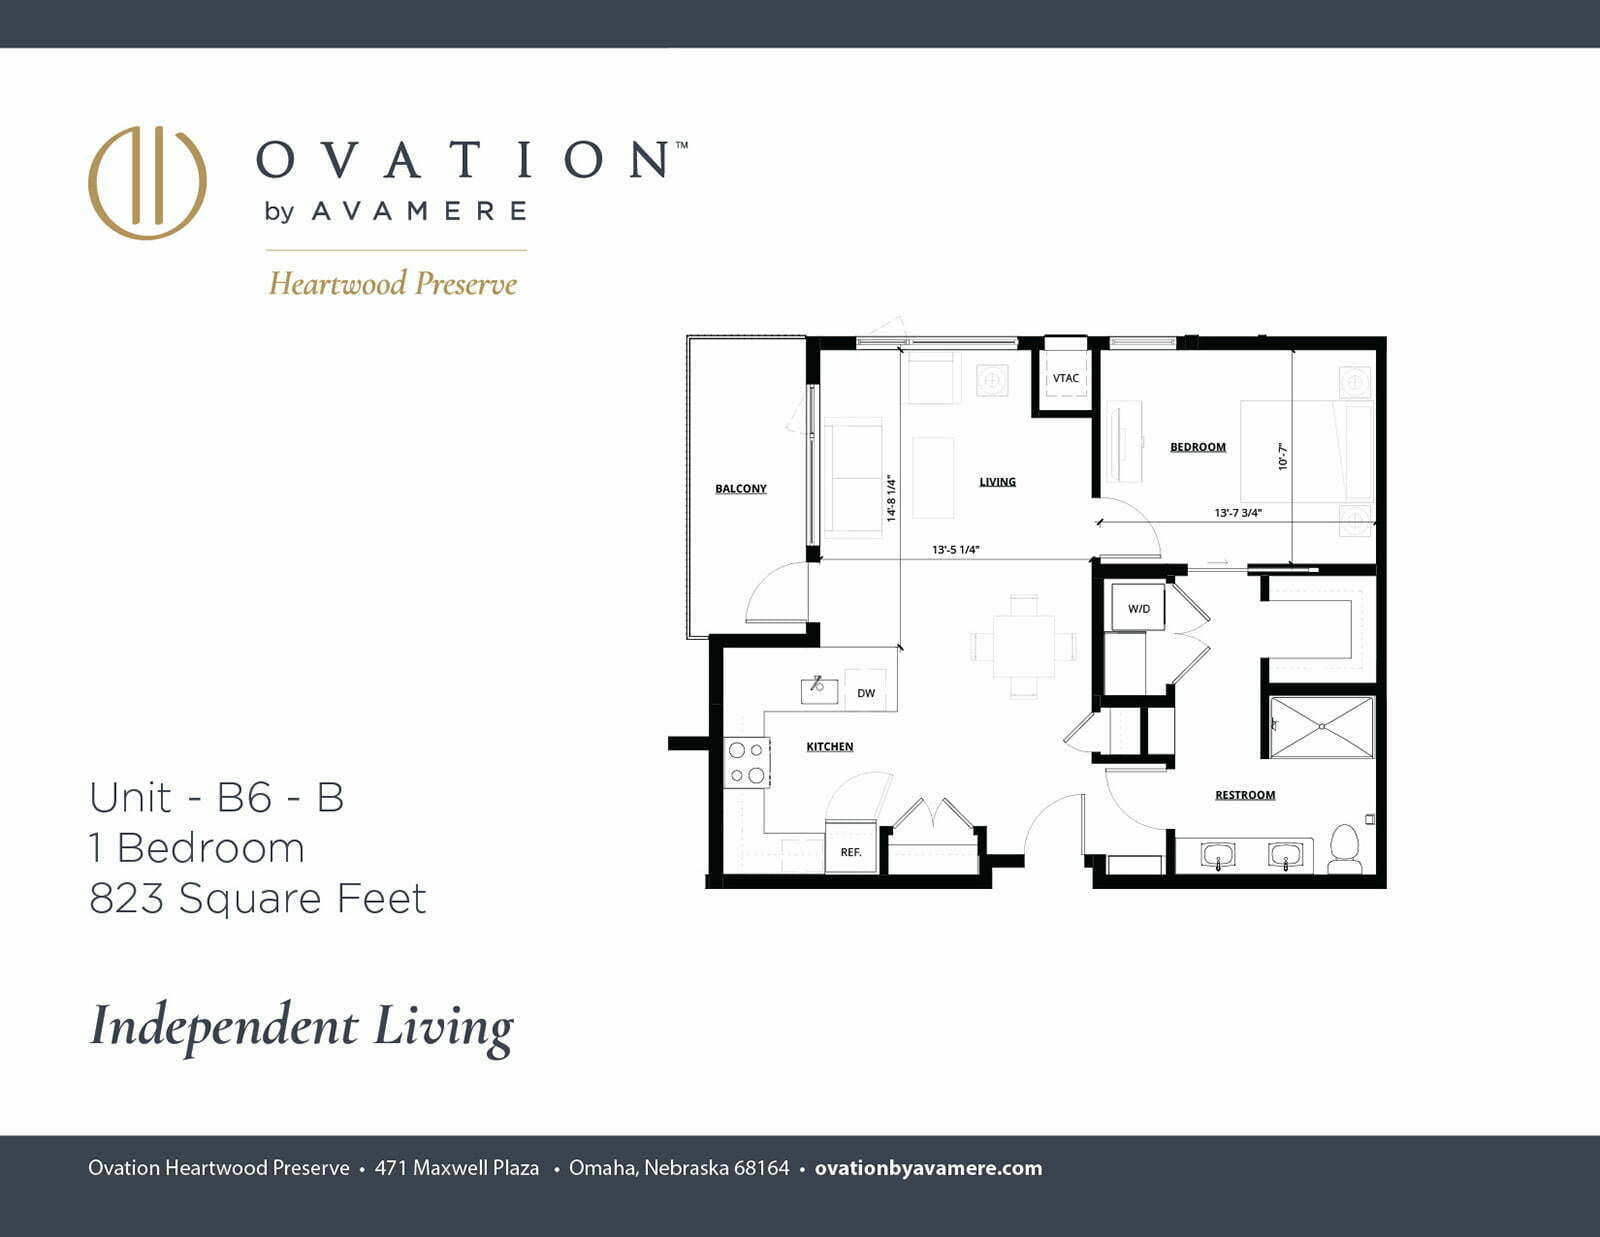 Independent Living | Room B6 - B